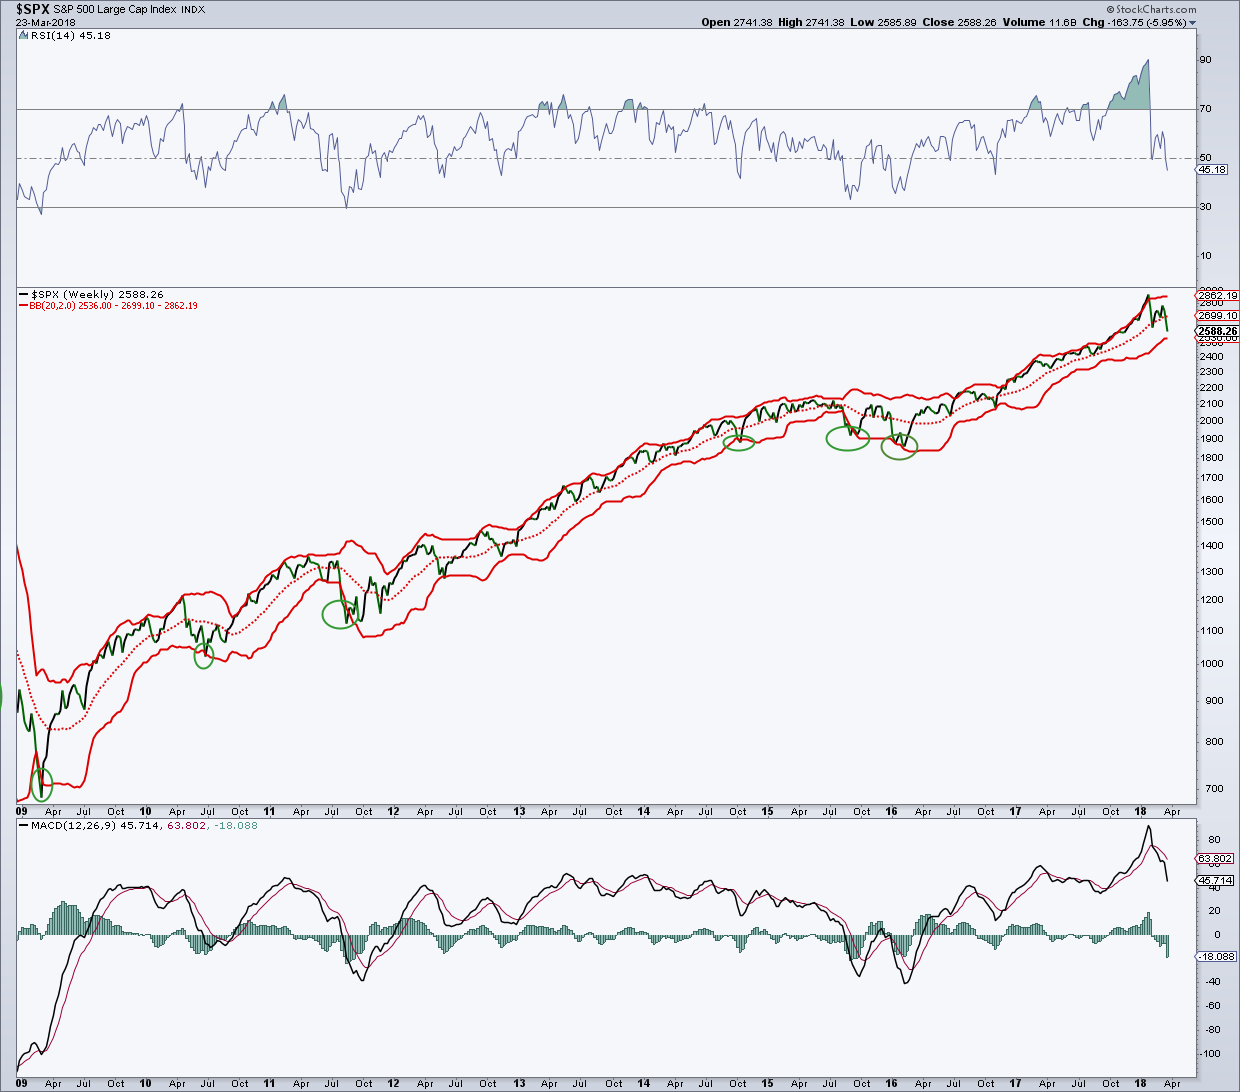 s&p 500 weekly stock market chart analysis research bull market correction_march 26